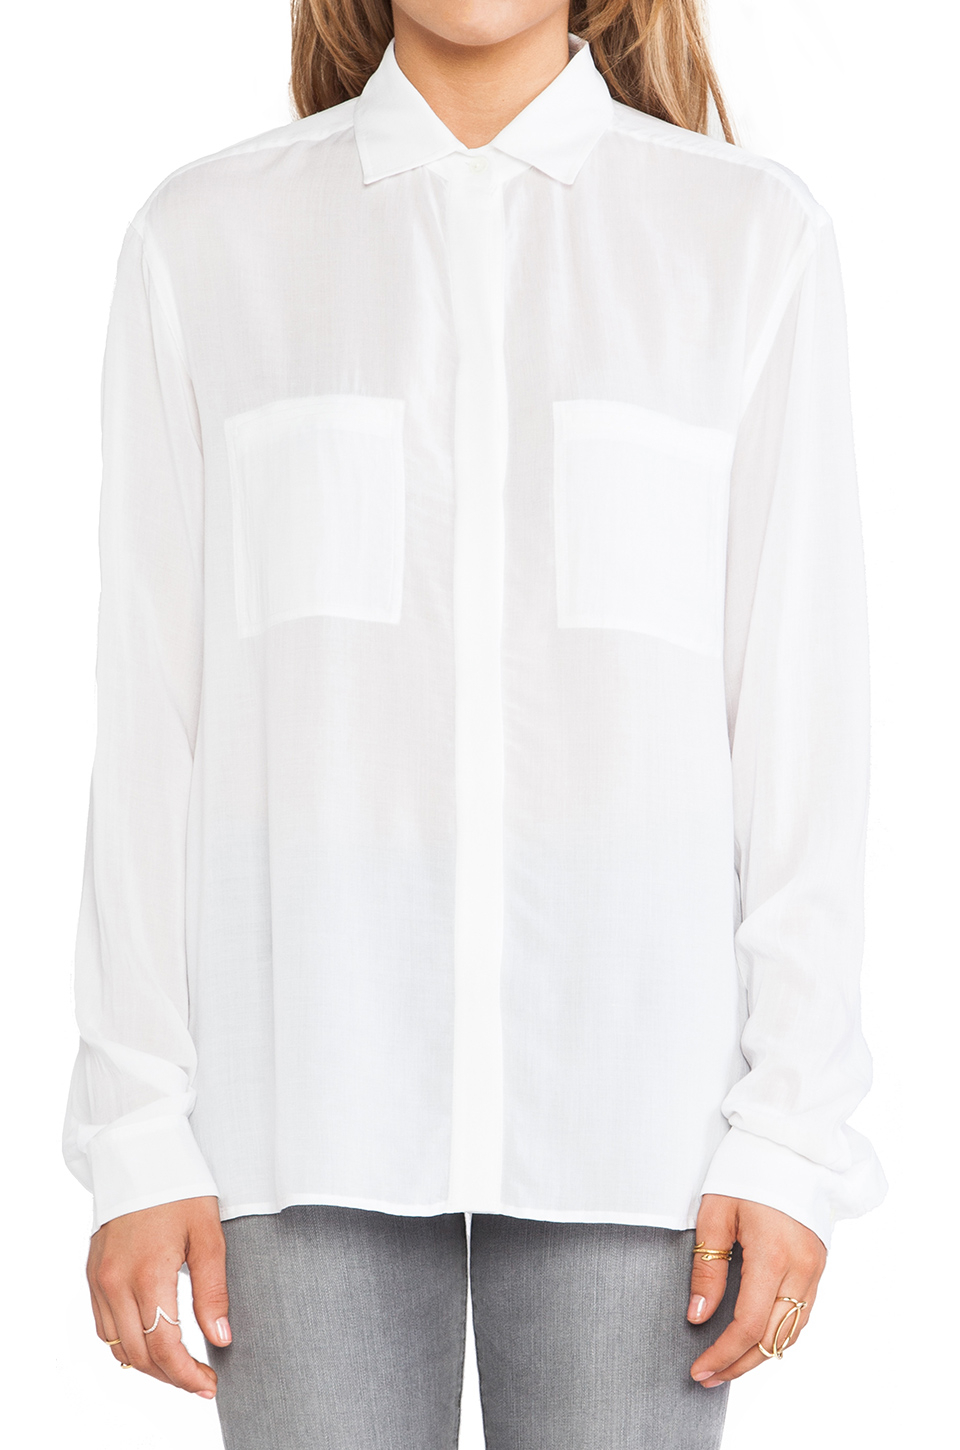 Vince Long Sleeve Button Up Shirt in White | Lyst